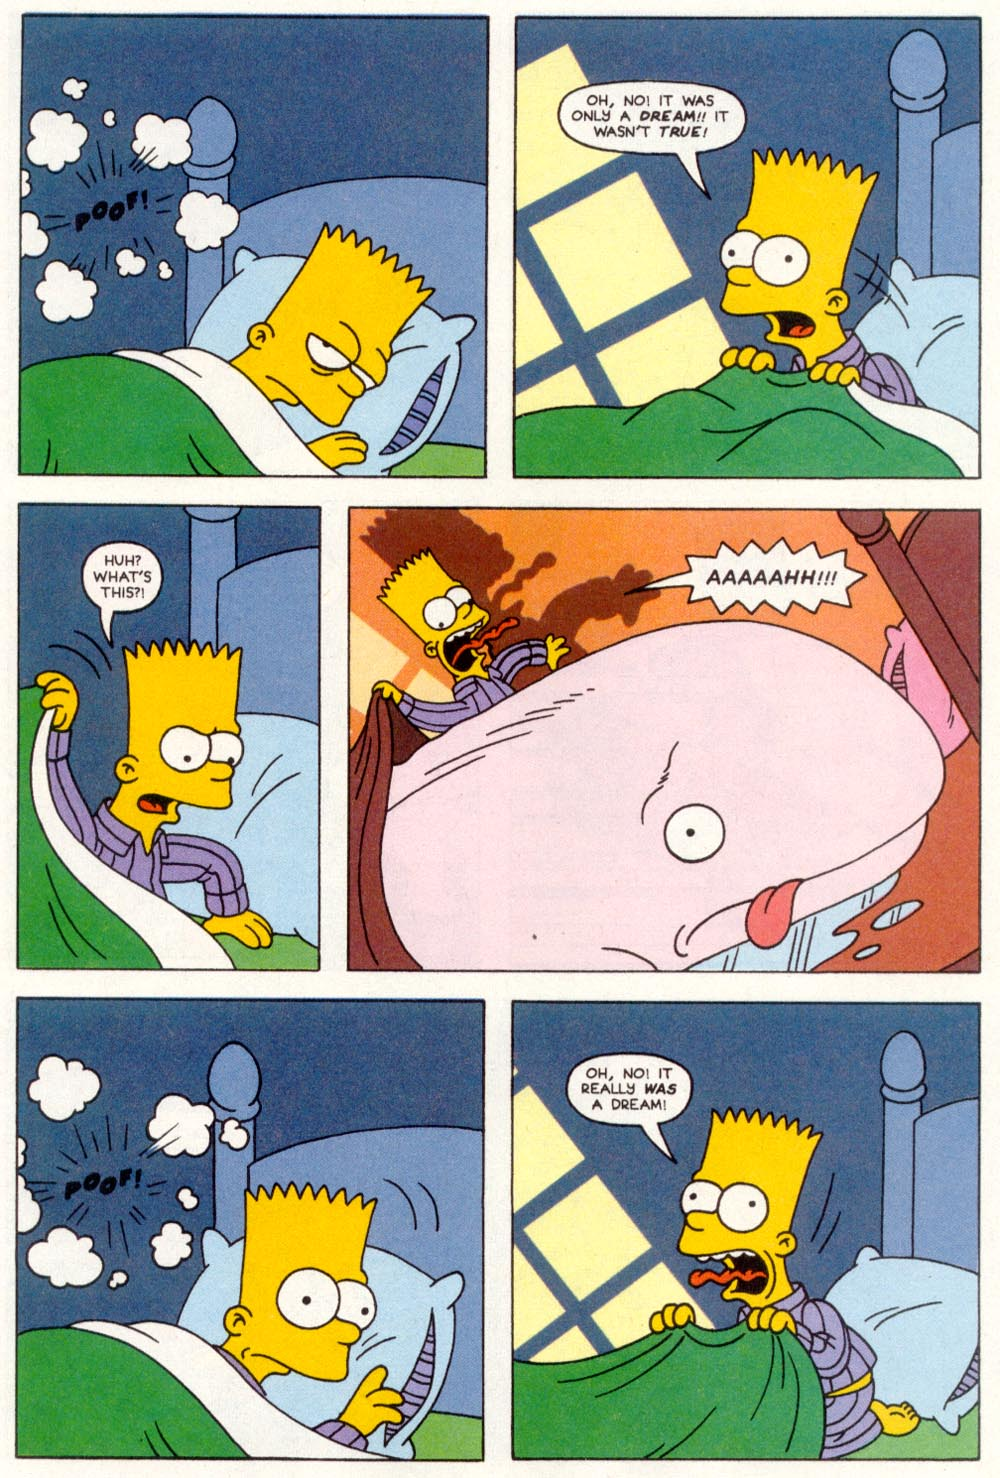 Read online Treehouse of Horror comic -  Issue #1 - 31